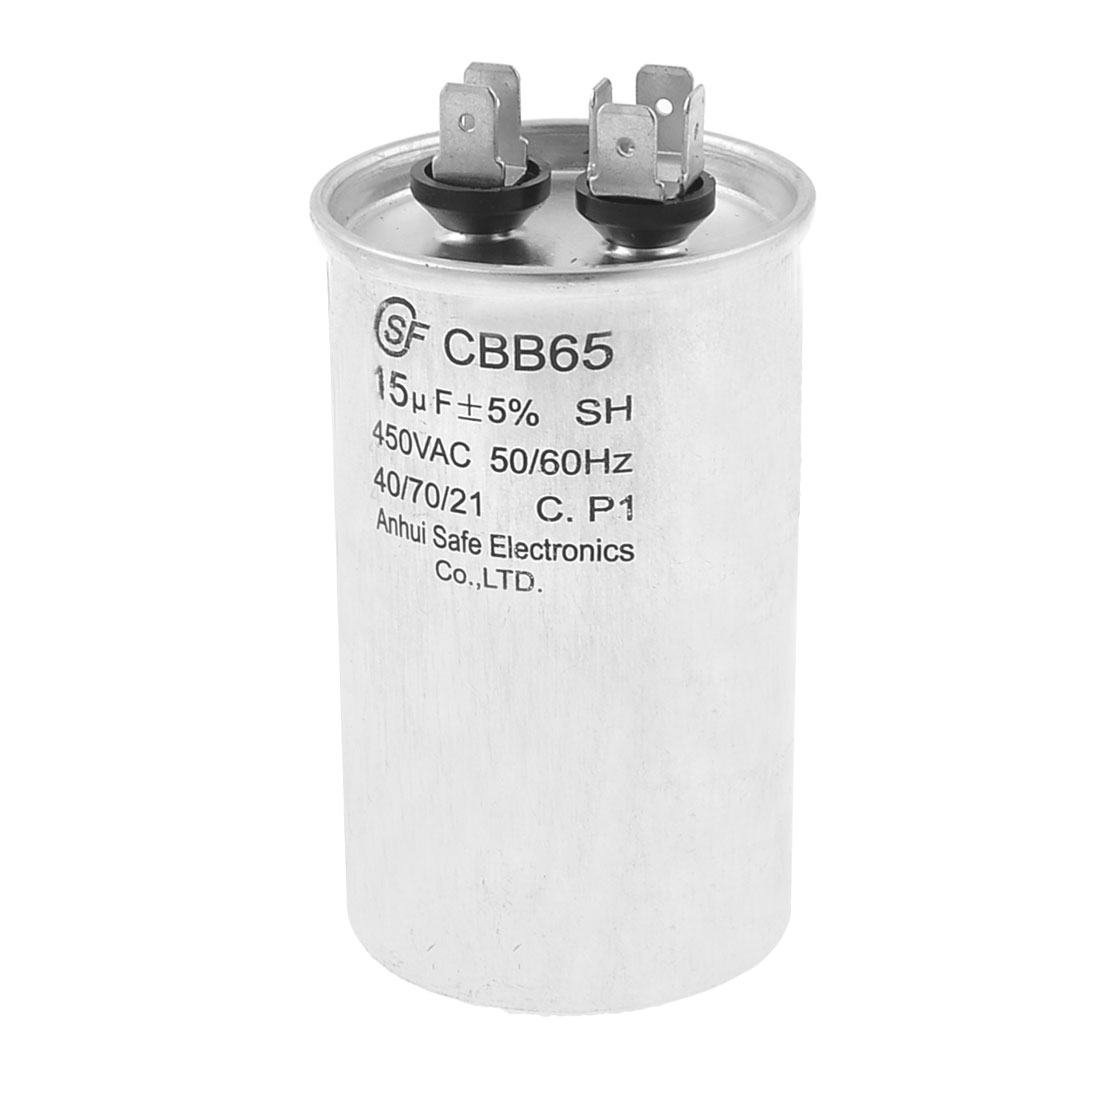 CBB65 450VAC 15uF Motor Run Air Conditioner Capacitor